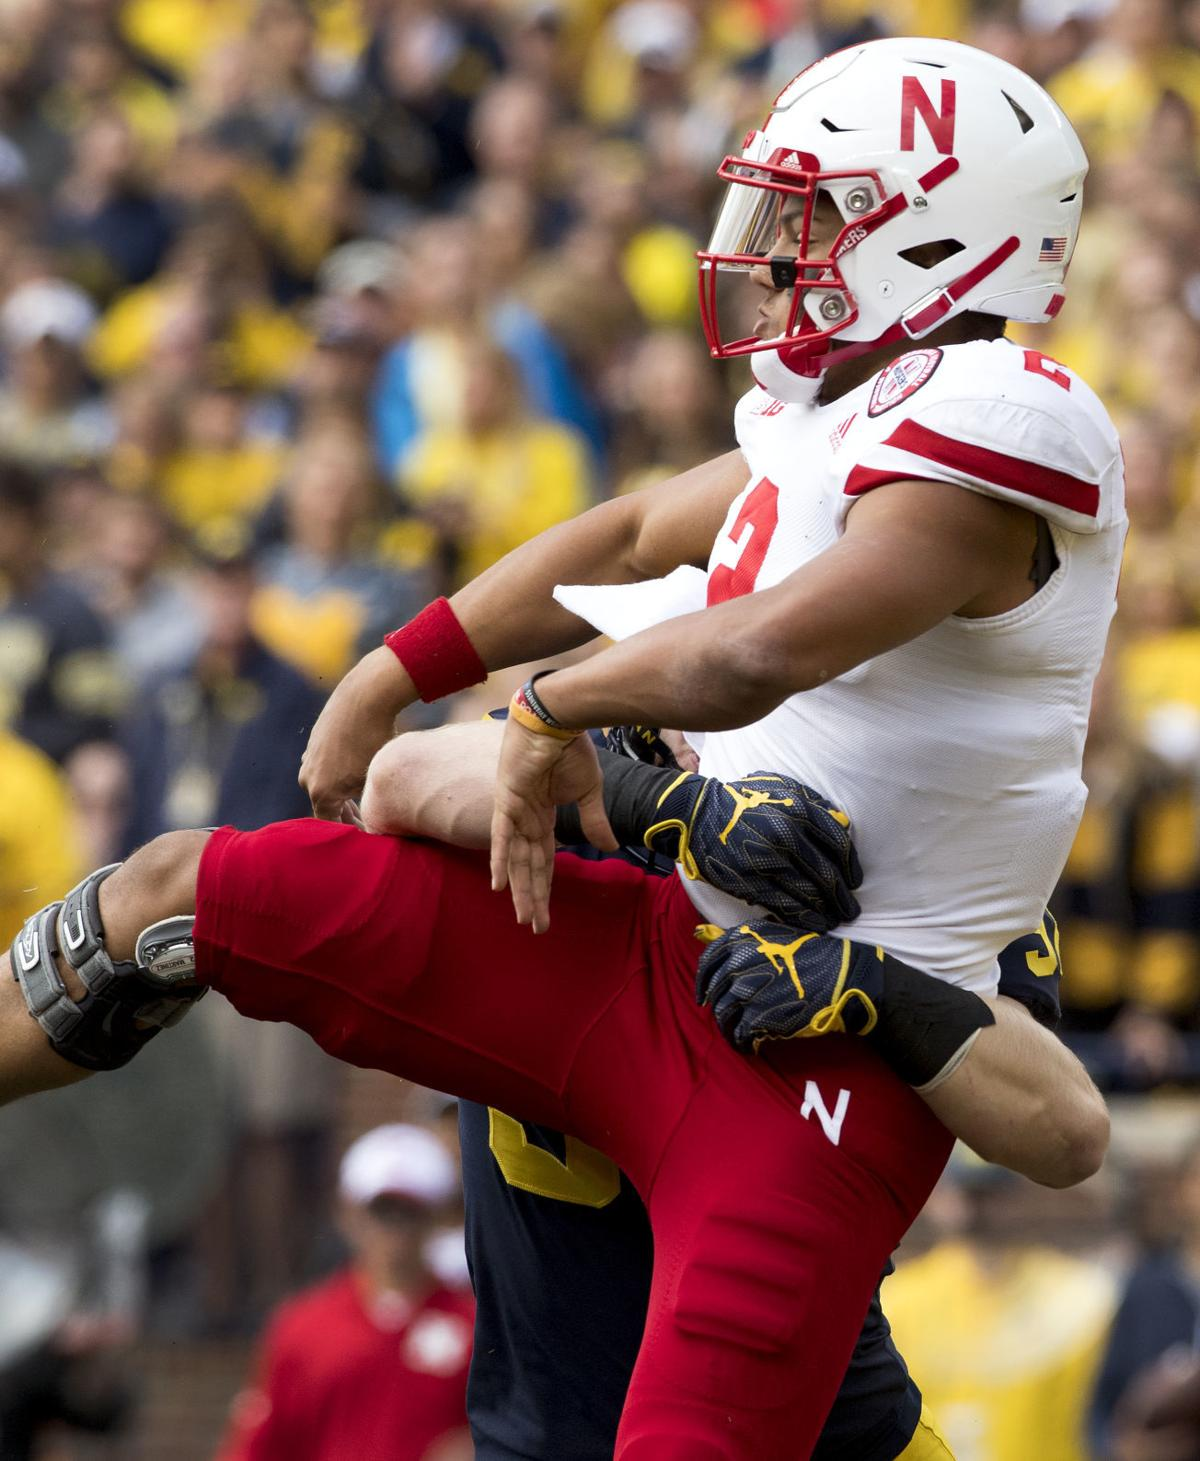 0edda02adab1 Sound waves  What others are saying about Michigan s win against Nebraska